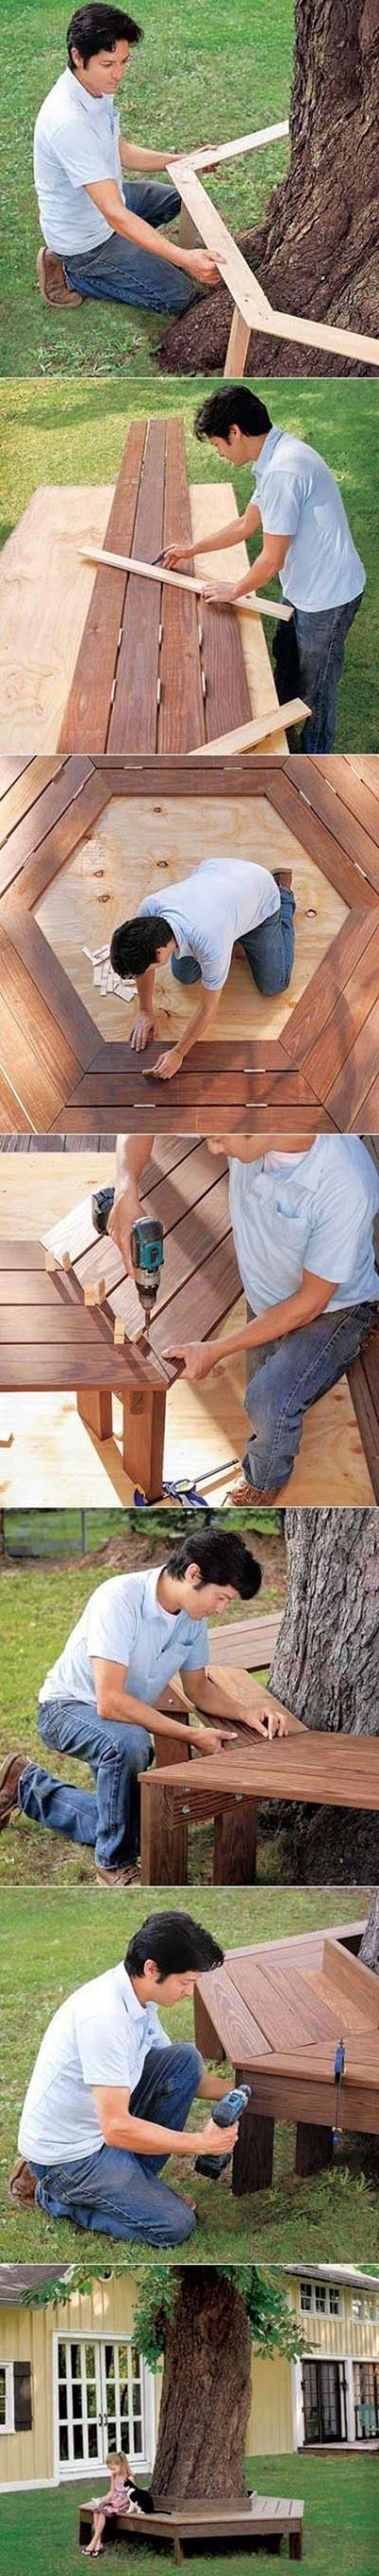 7 How to build a bench around a tree 892a677